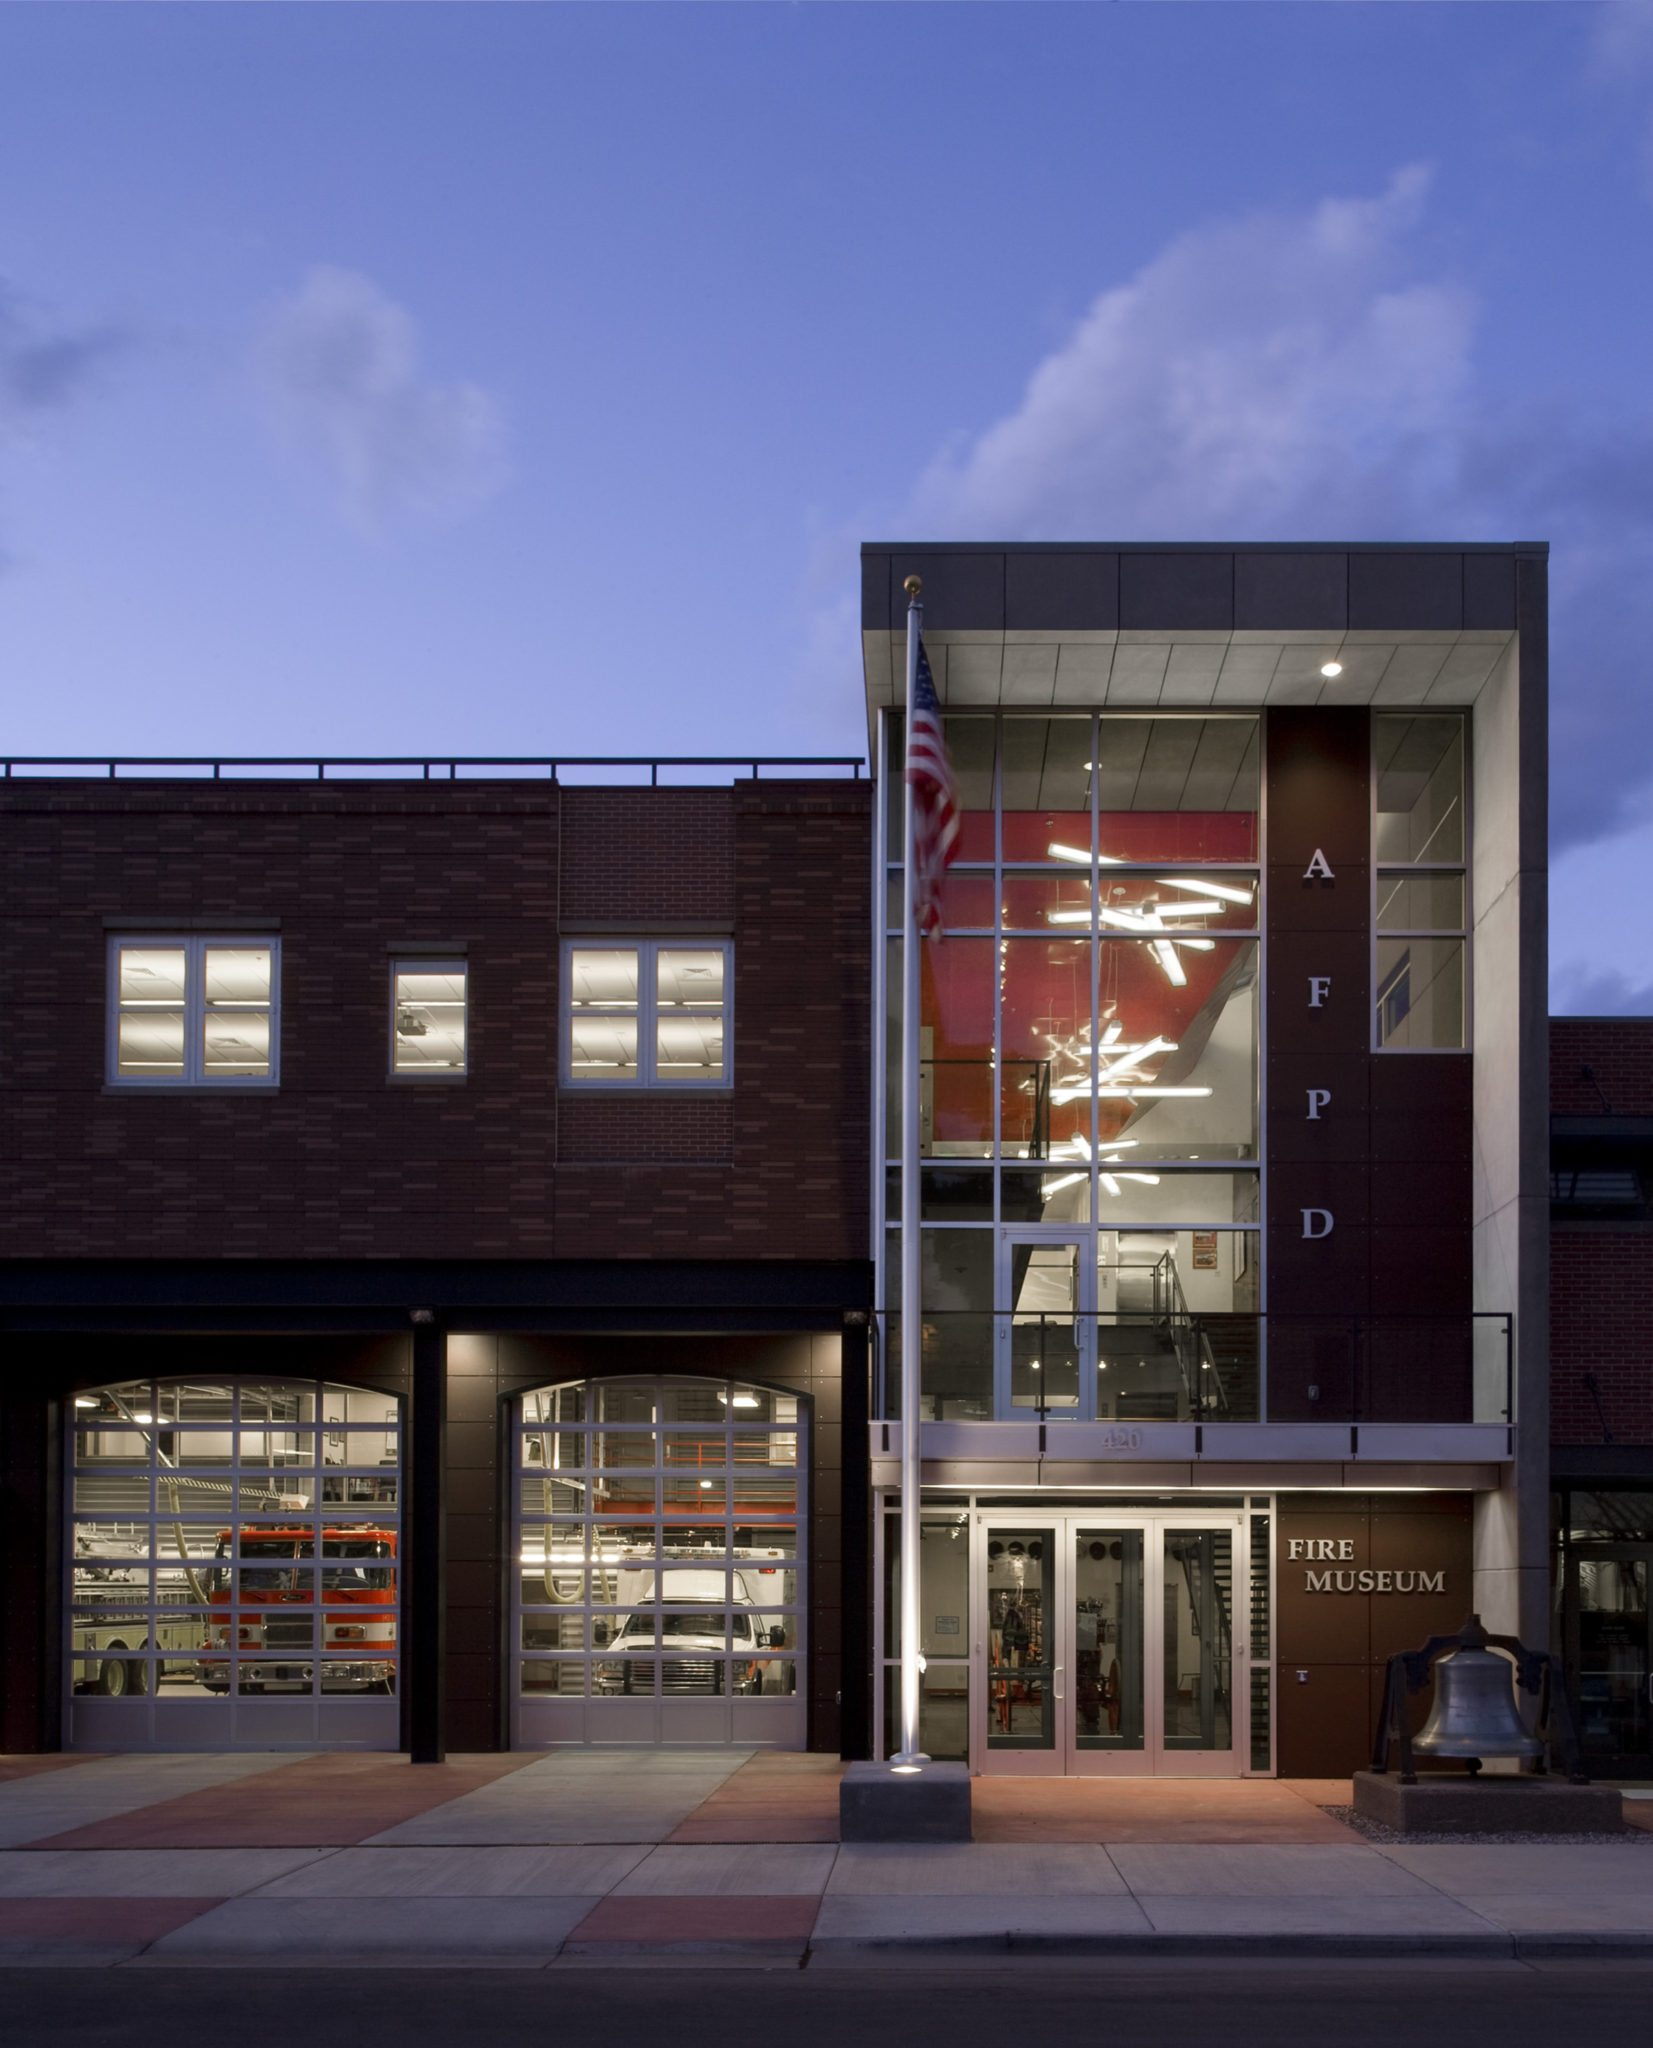 Fire station museum modern architecture and design aspen colorado